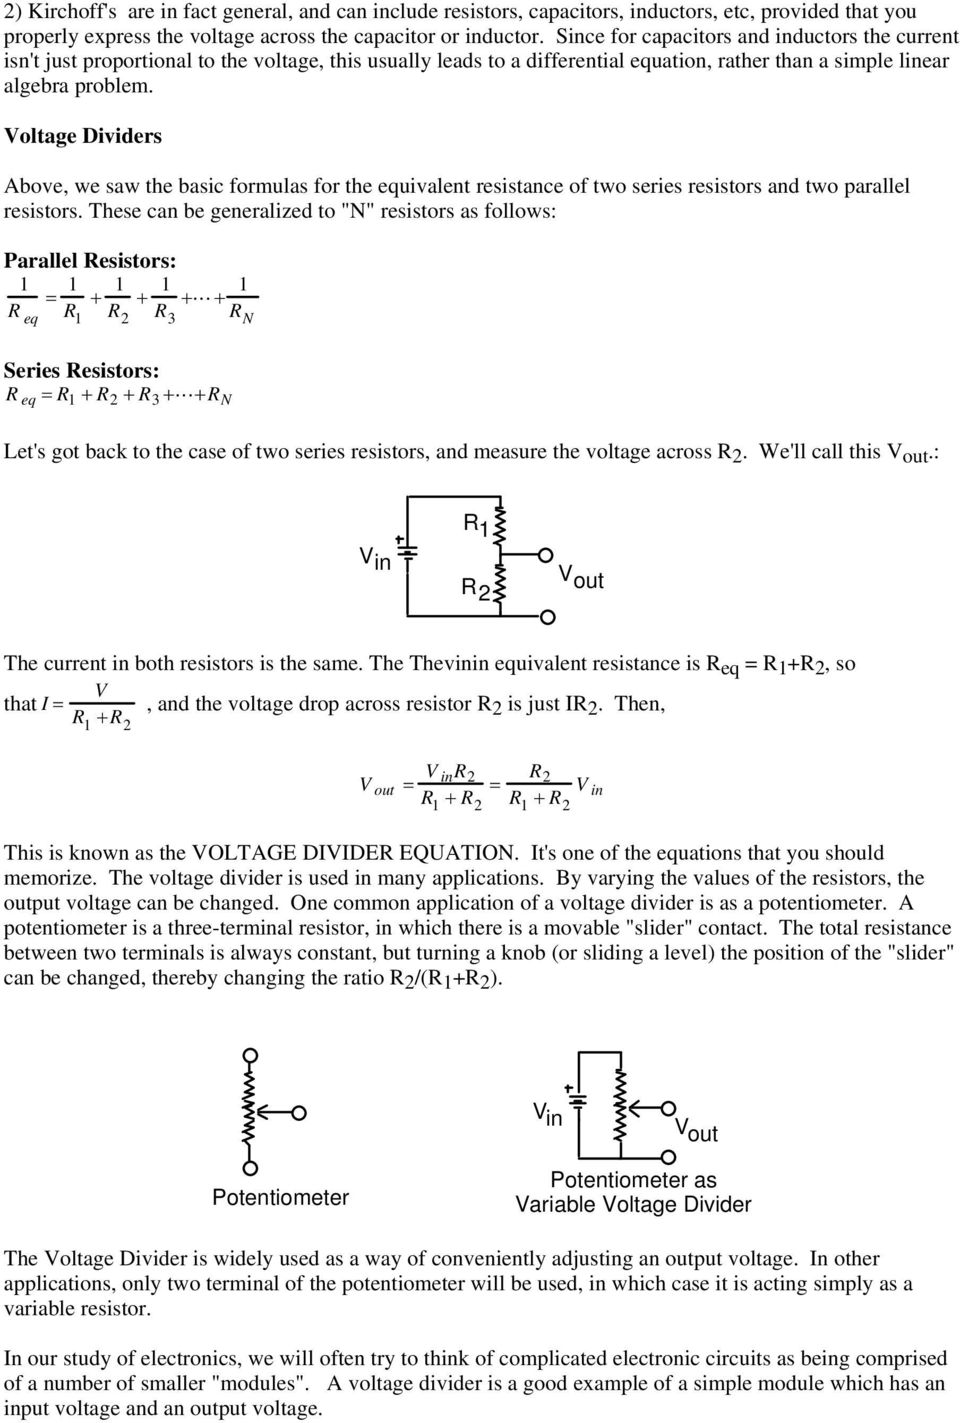 Chem 628 Lecture Notes Passive Circuits Resistance Capacitance Resistors Simple Voltage Divider Question Electrical Engineering Dividers Above We Saw The Basic Formulas For Equivalent Of Two Series